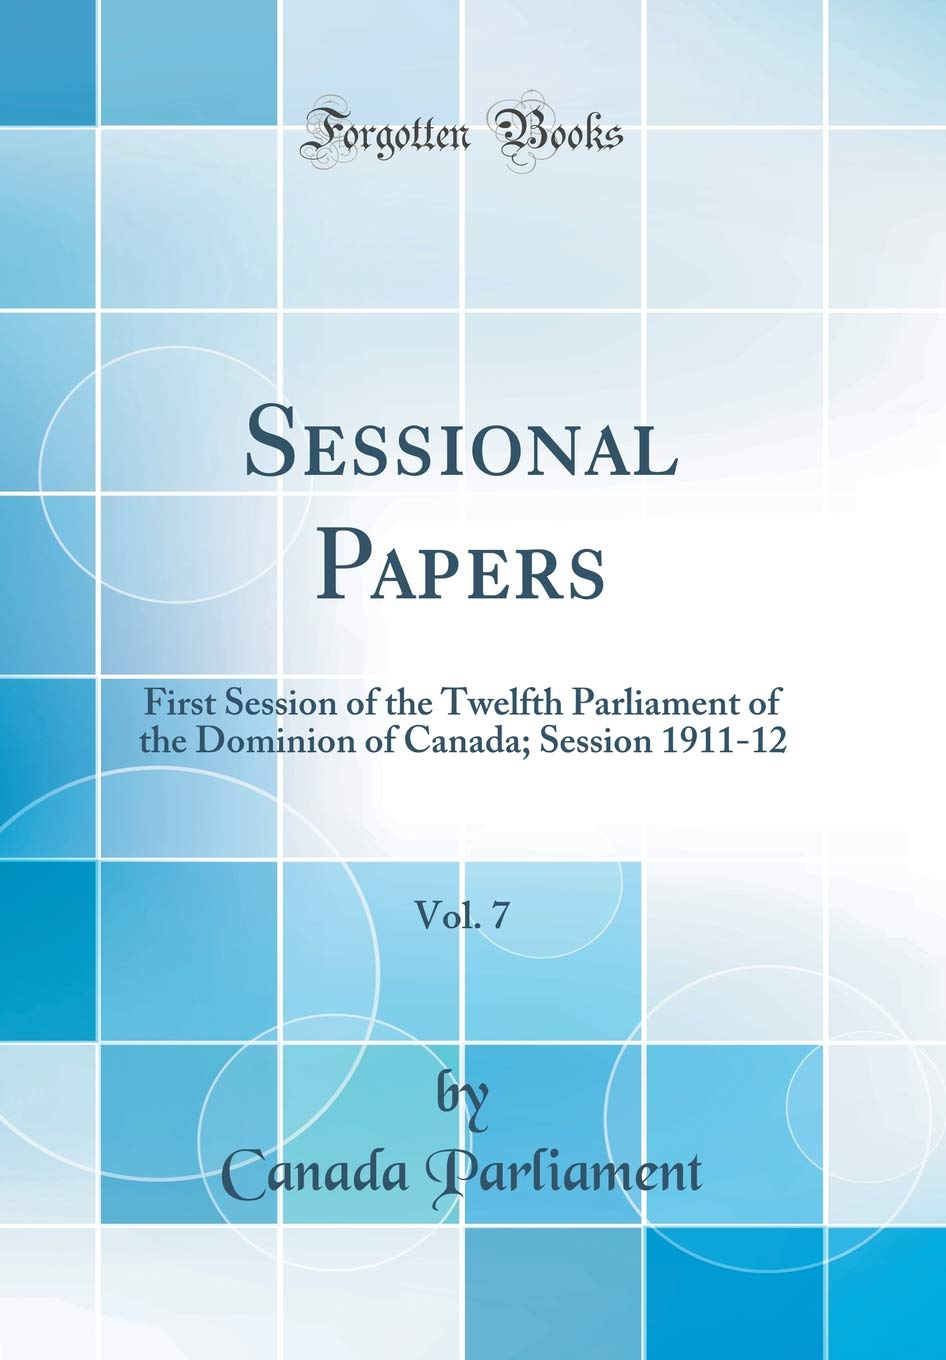 Sessional Papers, Vol. 7: First Session of the Twelfth Parliament of the Dominion of Canada; Session 1911-12 (Classic Reprint) pdf